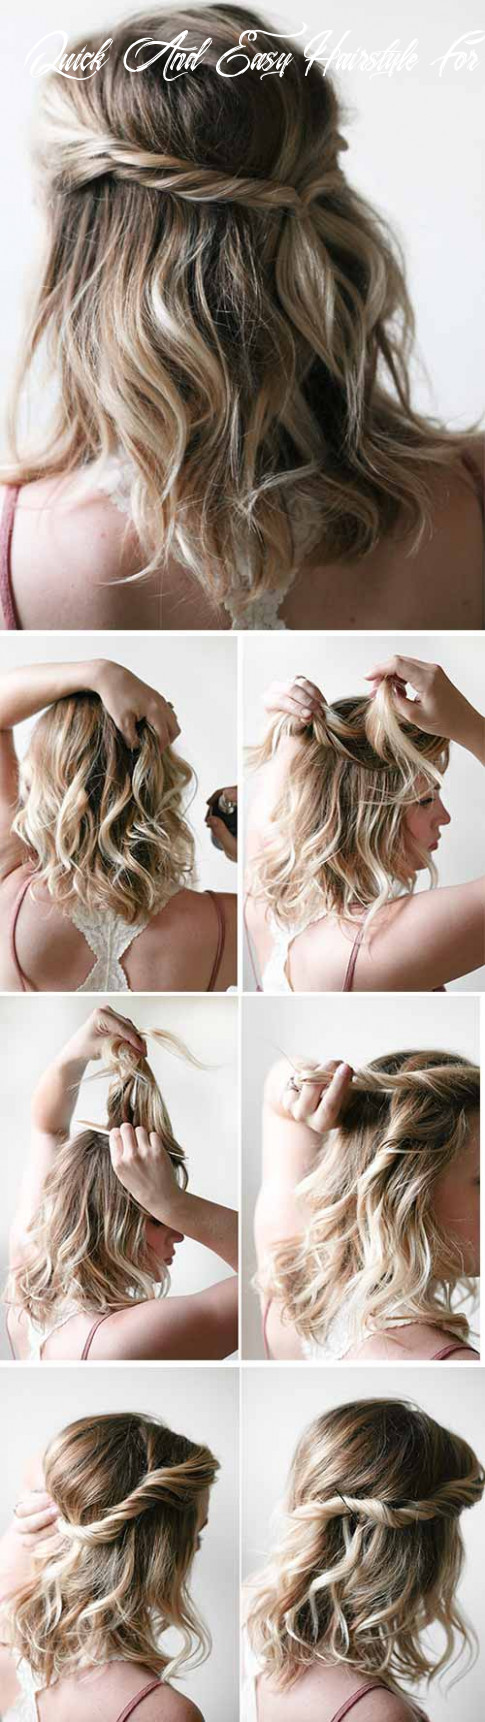 8 incredible diy short hairstyles a step by step guide quick and easy hairstyle for short hair